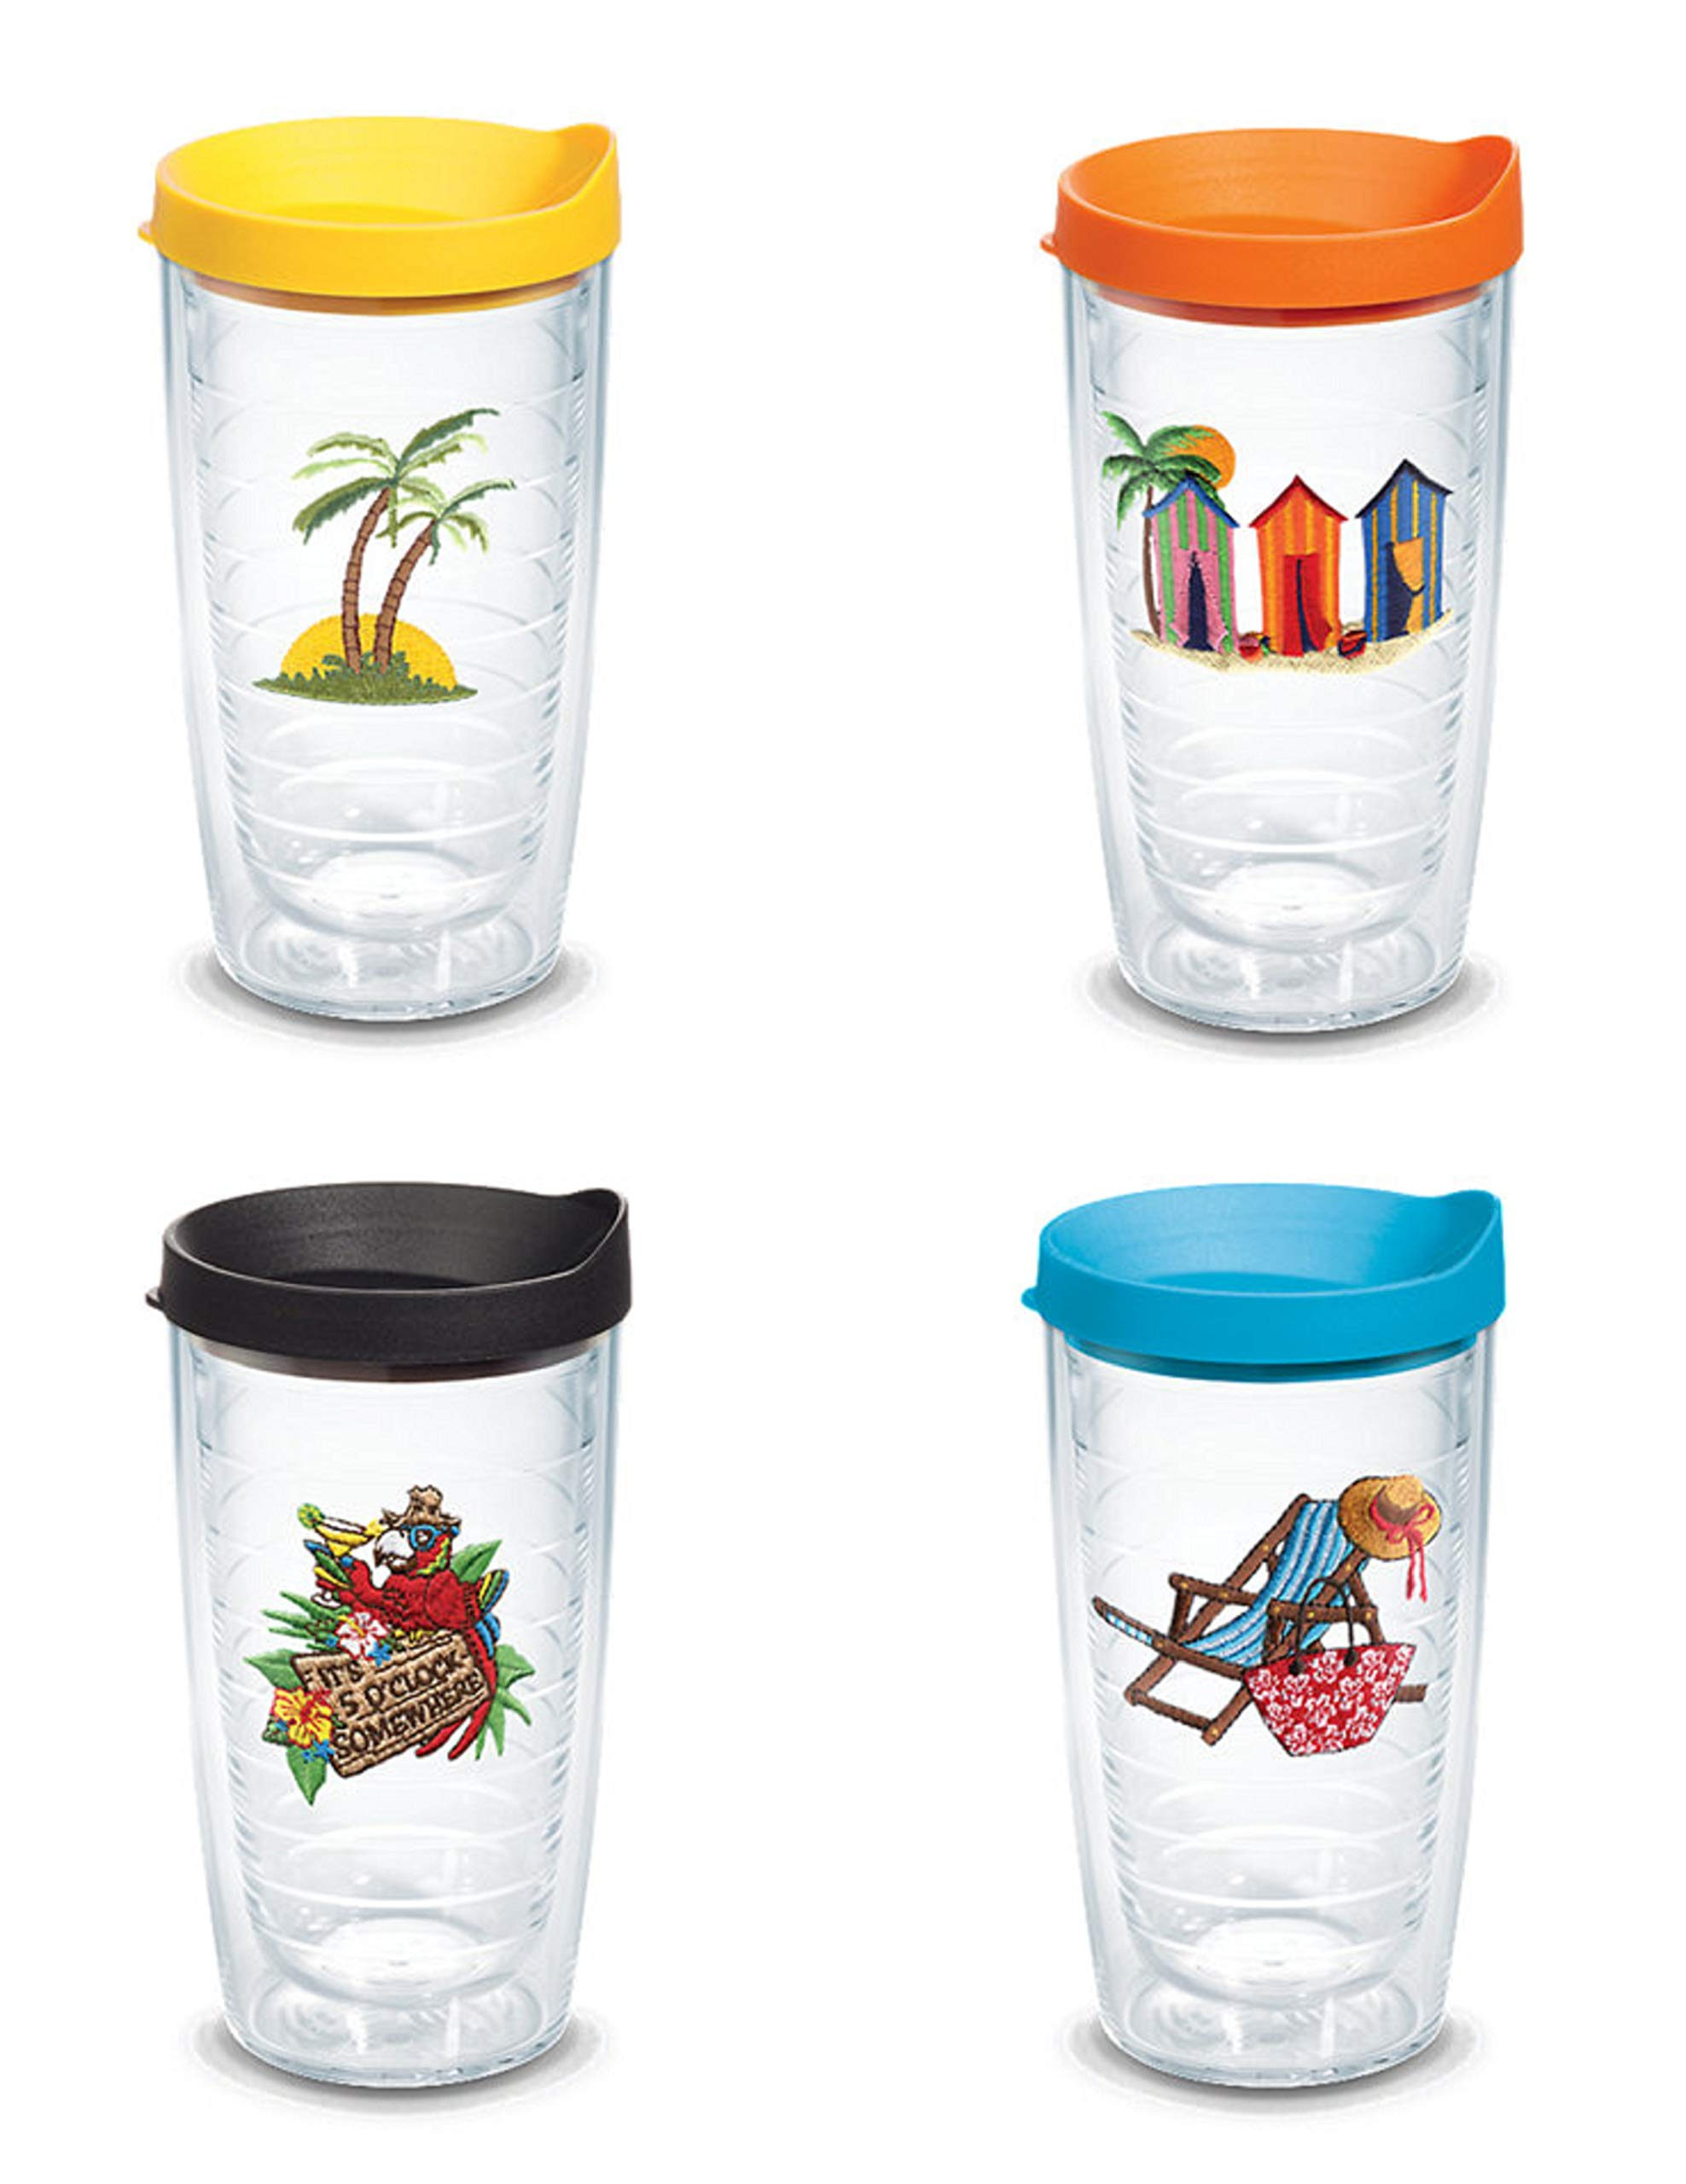 Tervis 16 Ounces Double Wall Tumblers ''Life On The Beach'', Set of 4 with Travel Lid